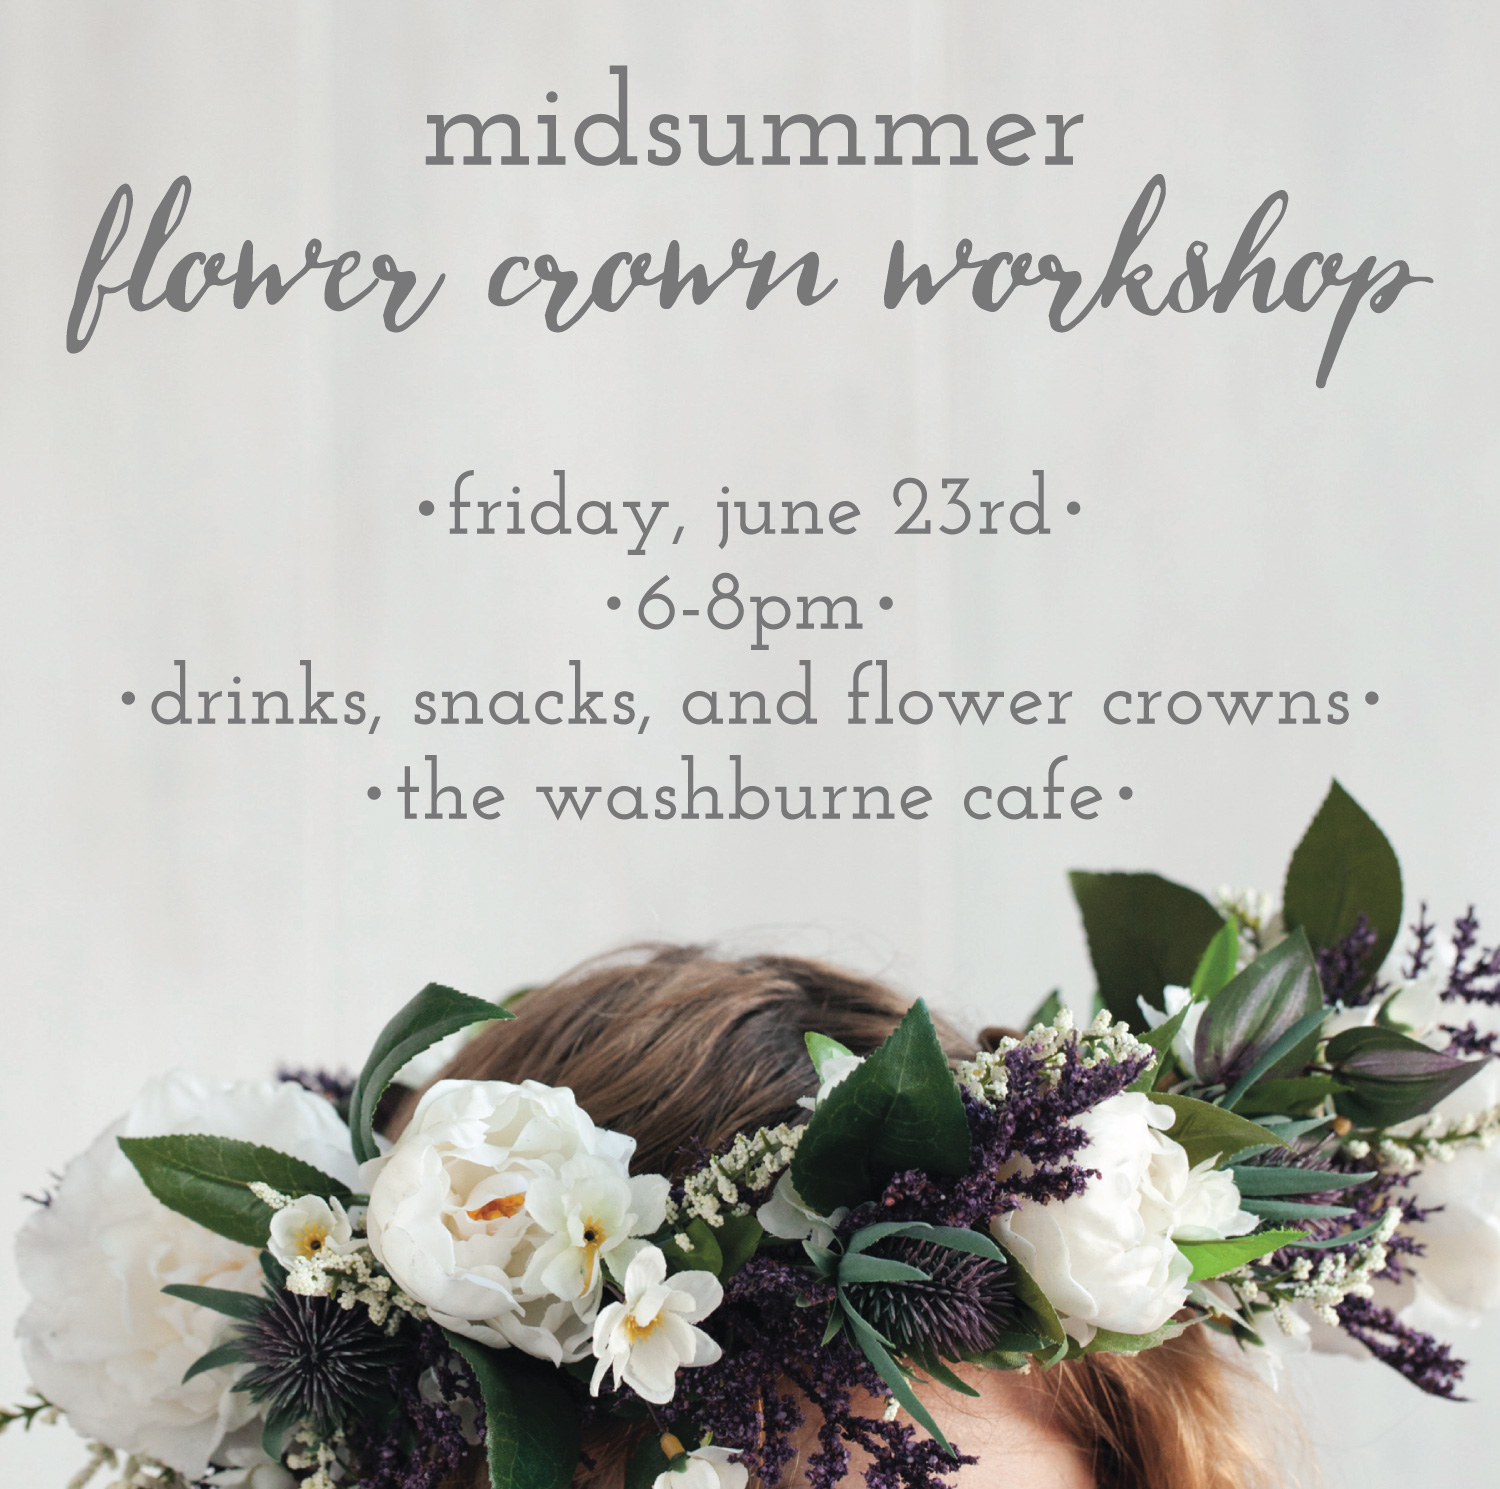 Midsummer Flower Crown Workshop Lulu The Baker